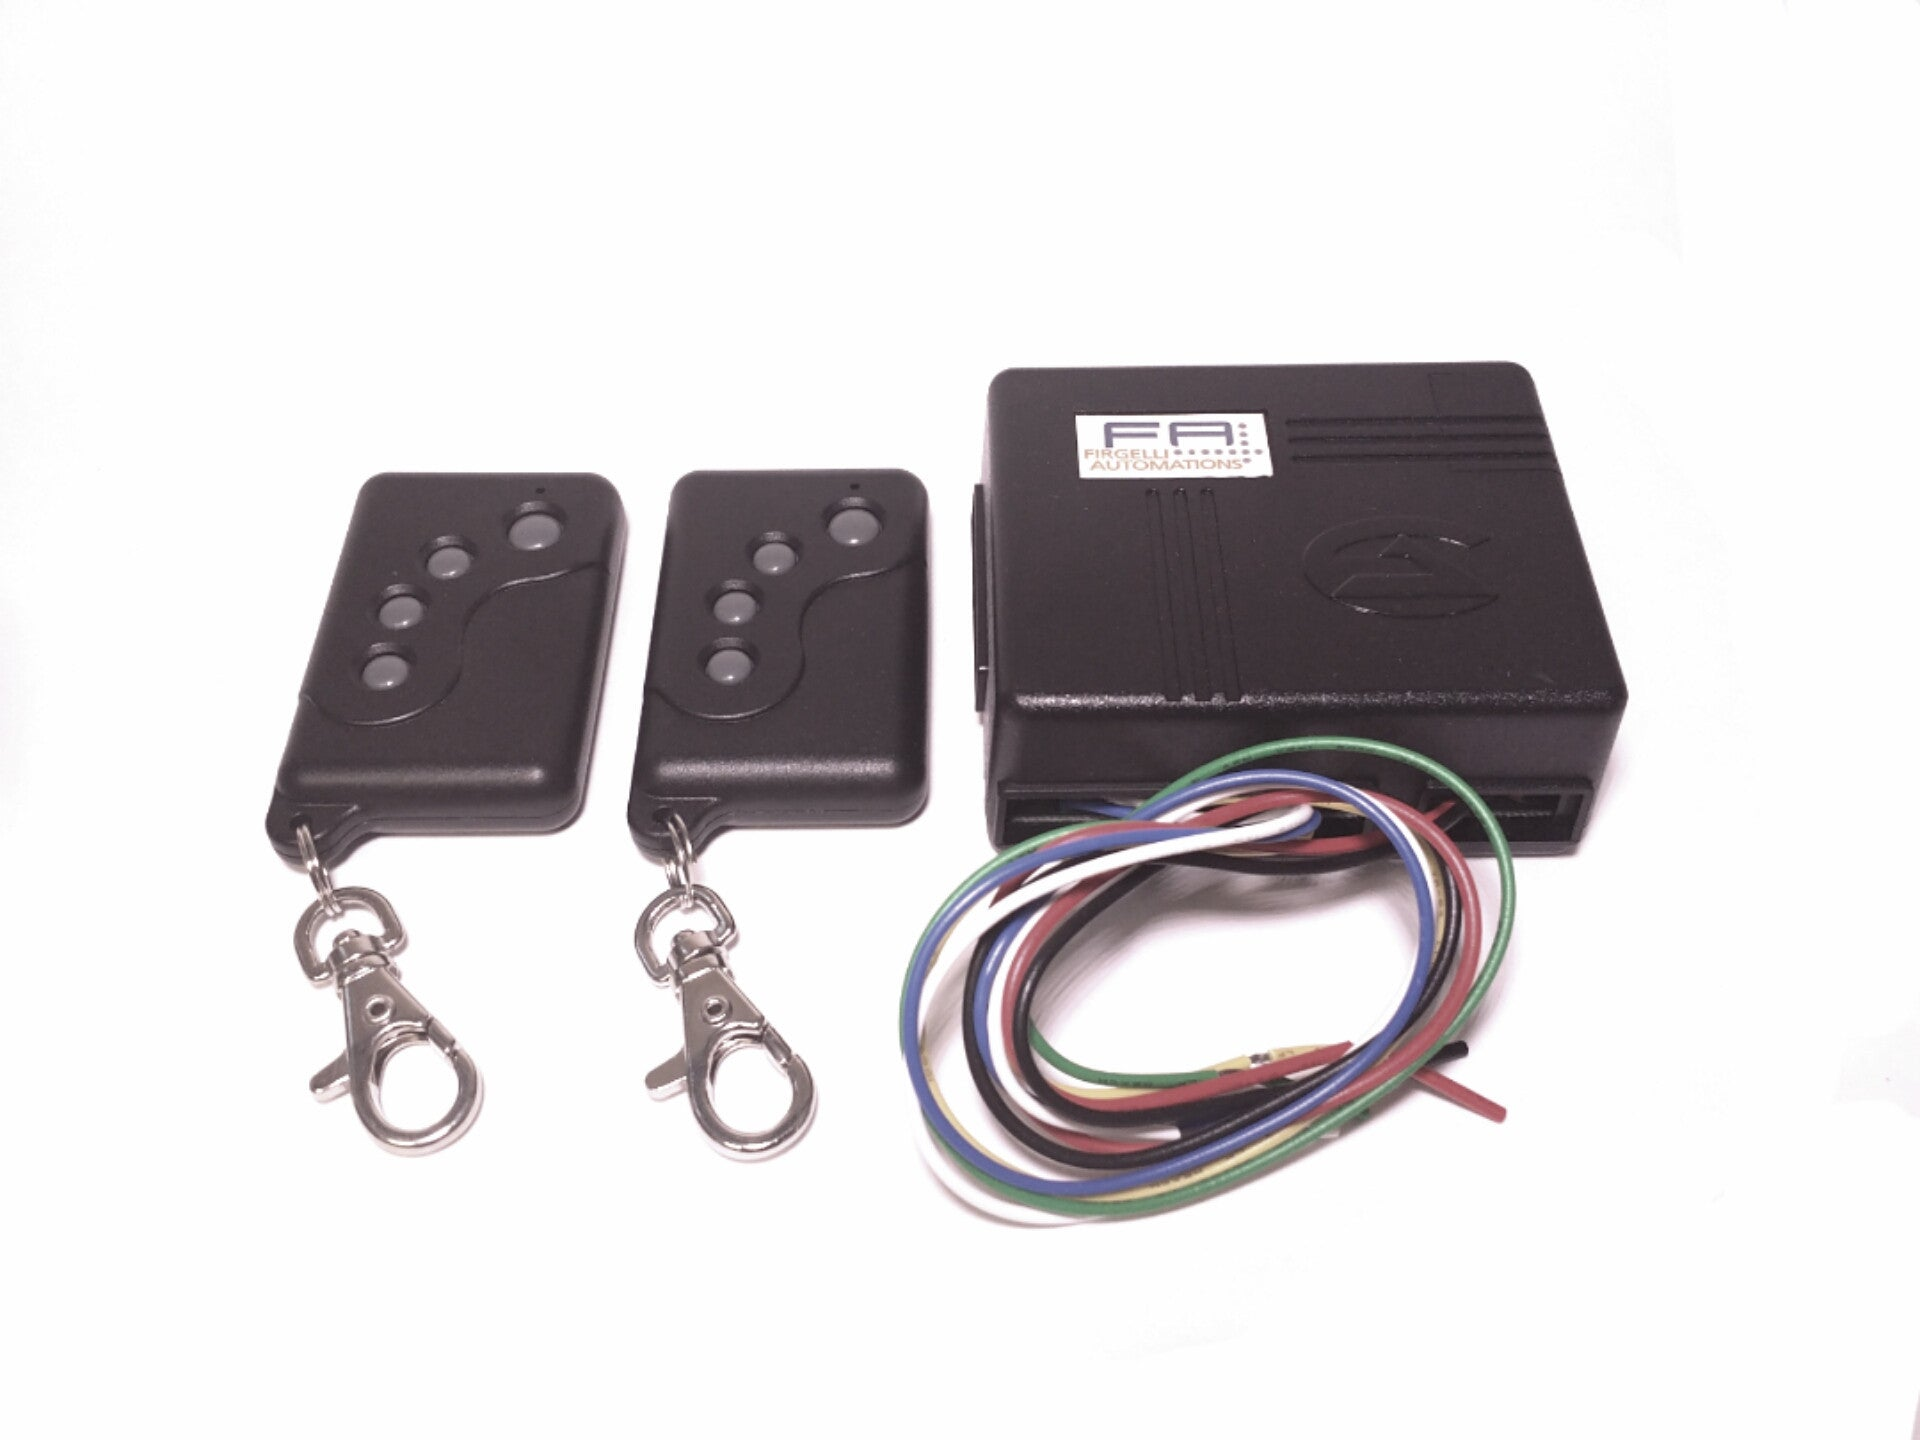 four channel remote control system